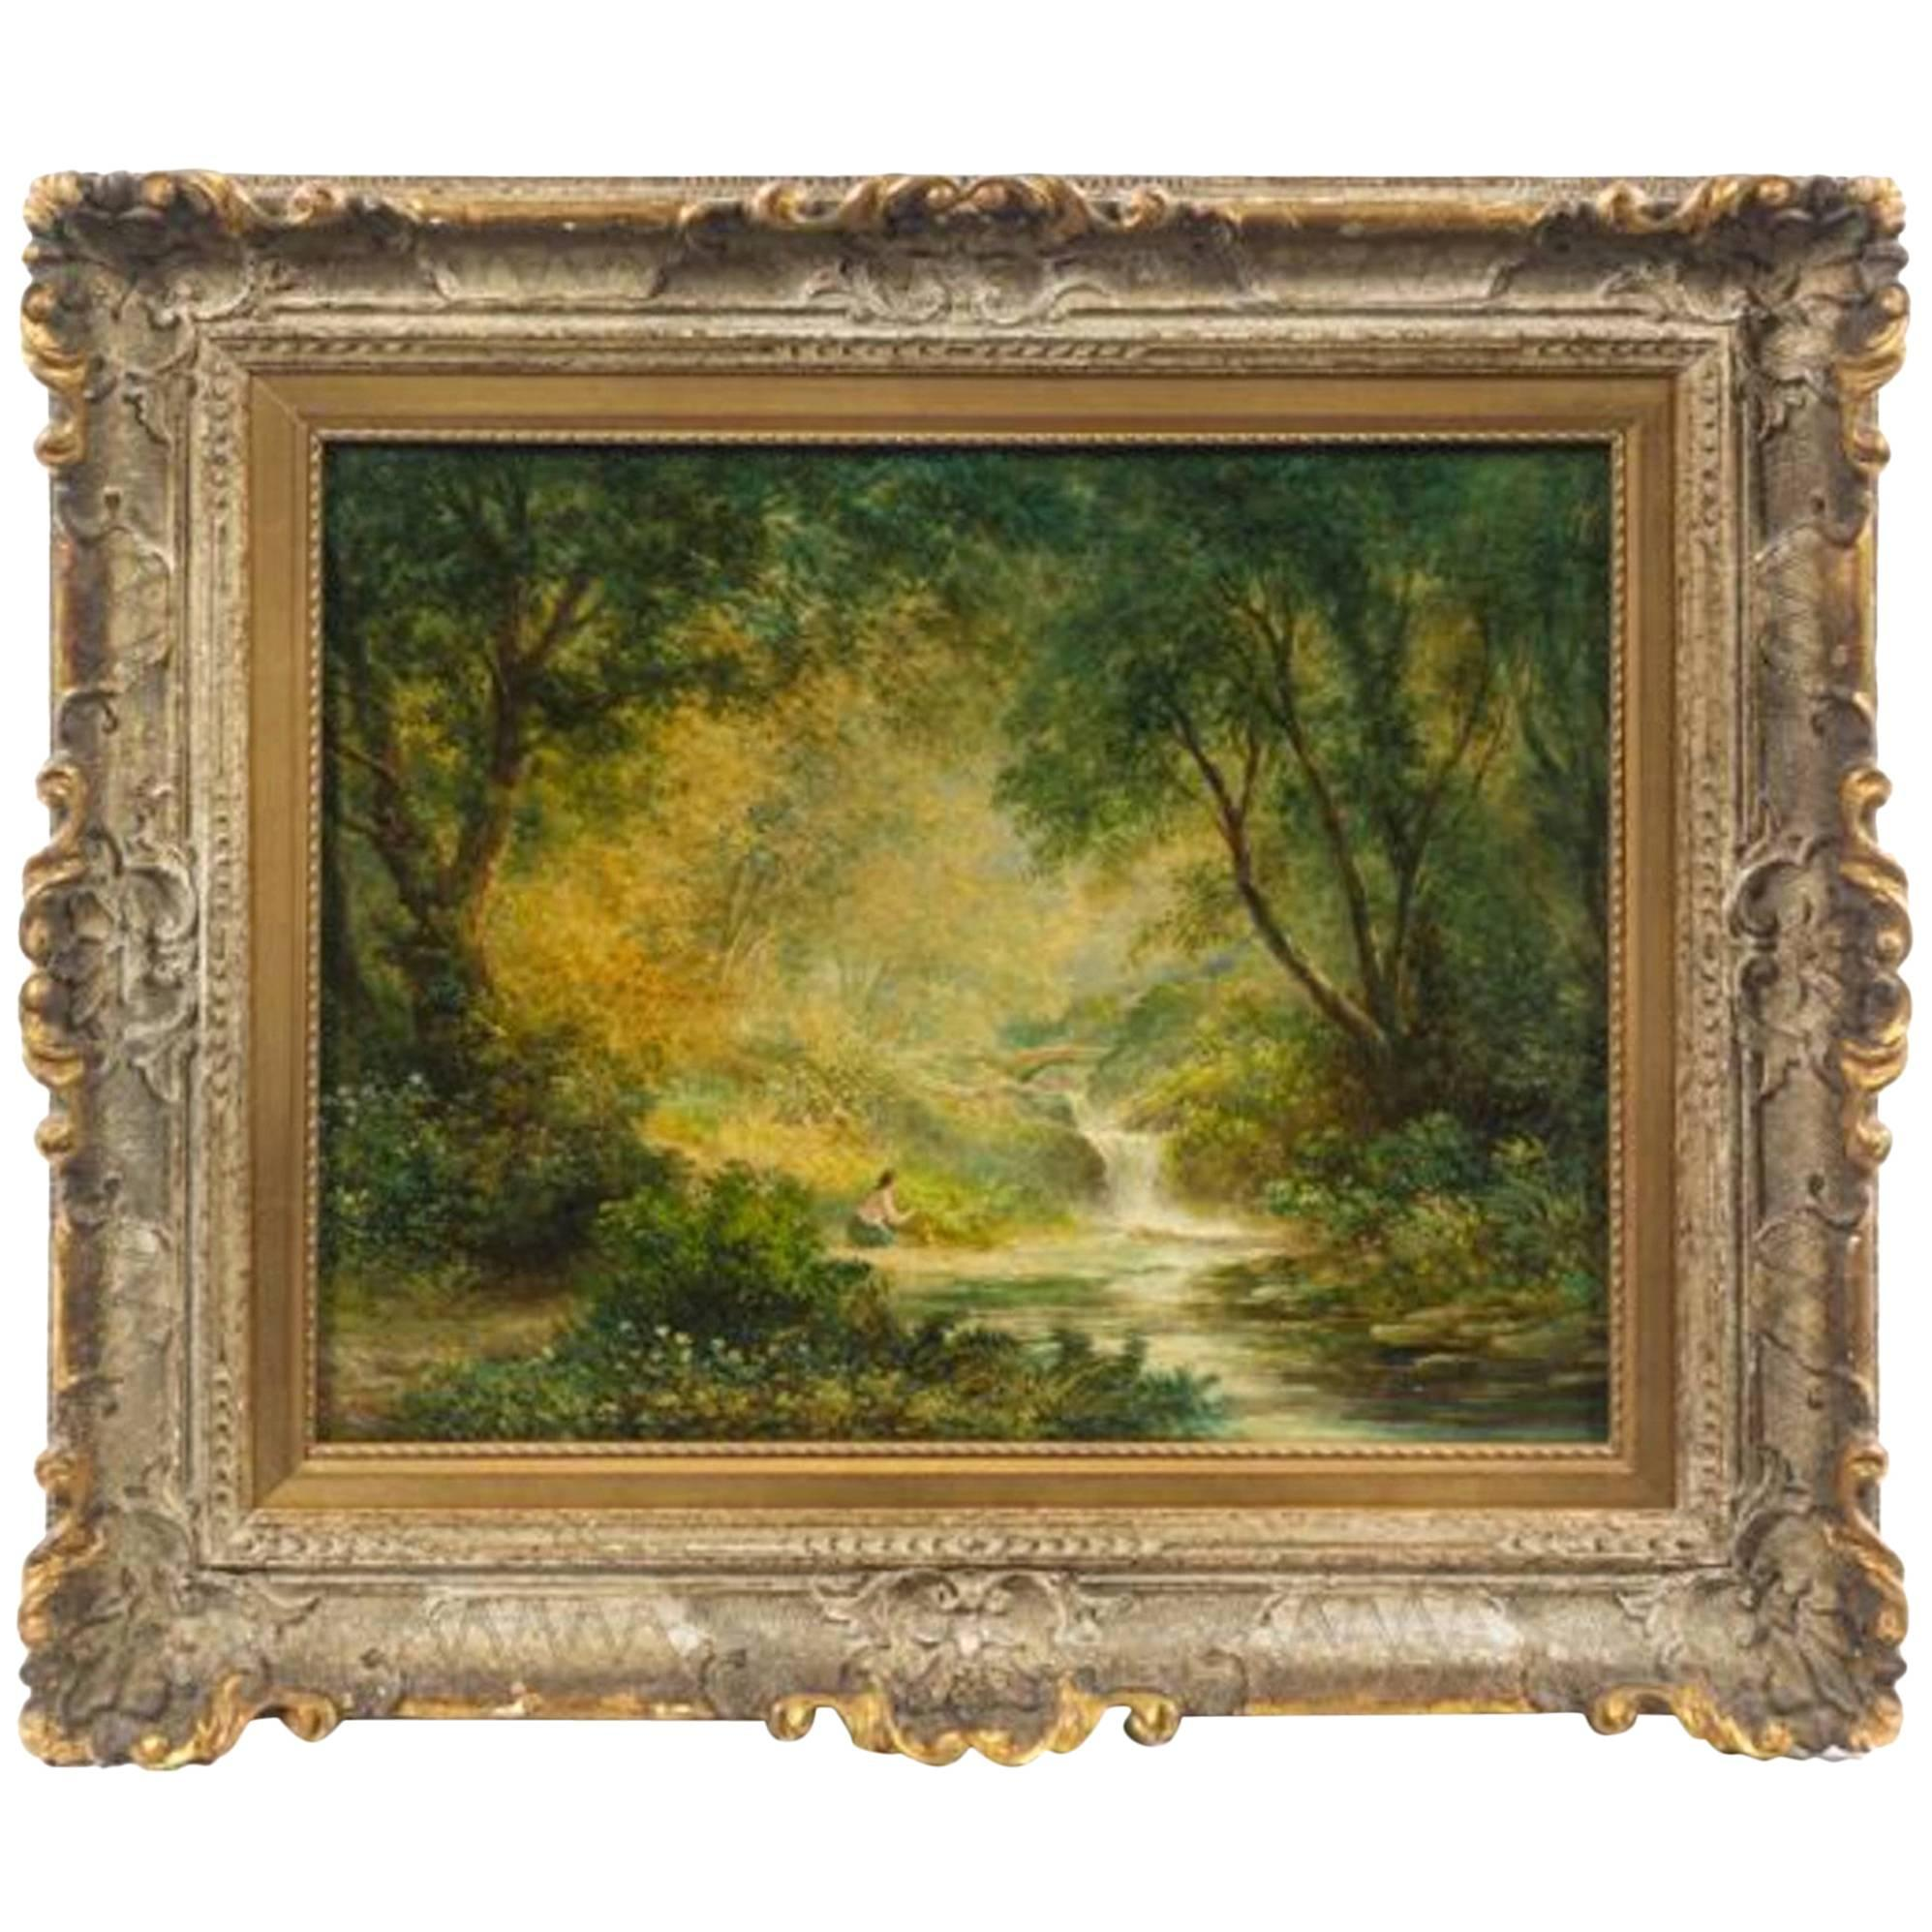 Continental School 'Late 19th century' Forest Landscape with Figure